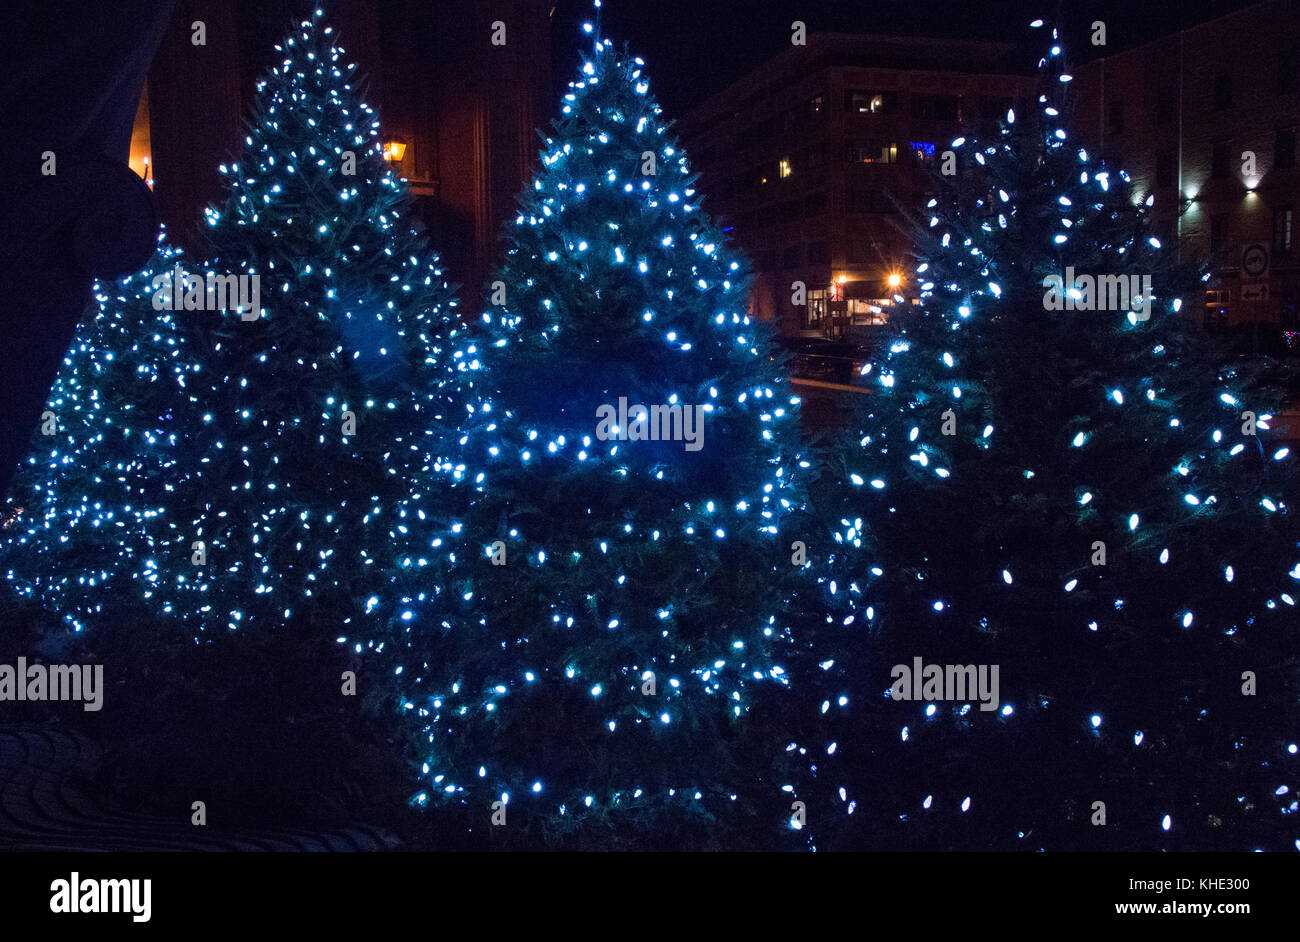 group of illuminated with blue lights christmas trees outdoor on a winter evening stock image - Christmas Tree With Blue Lights